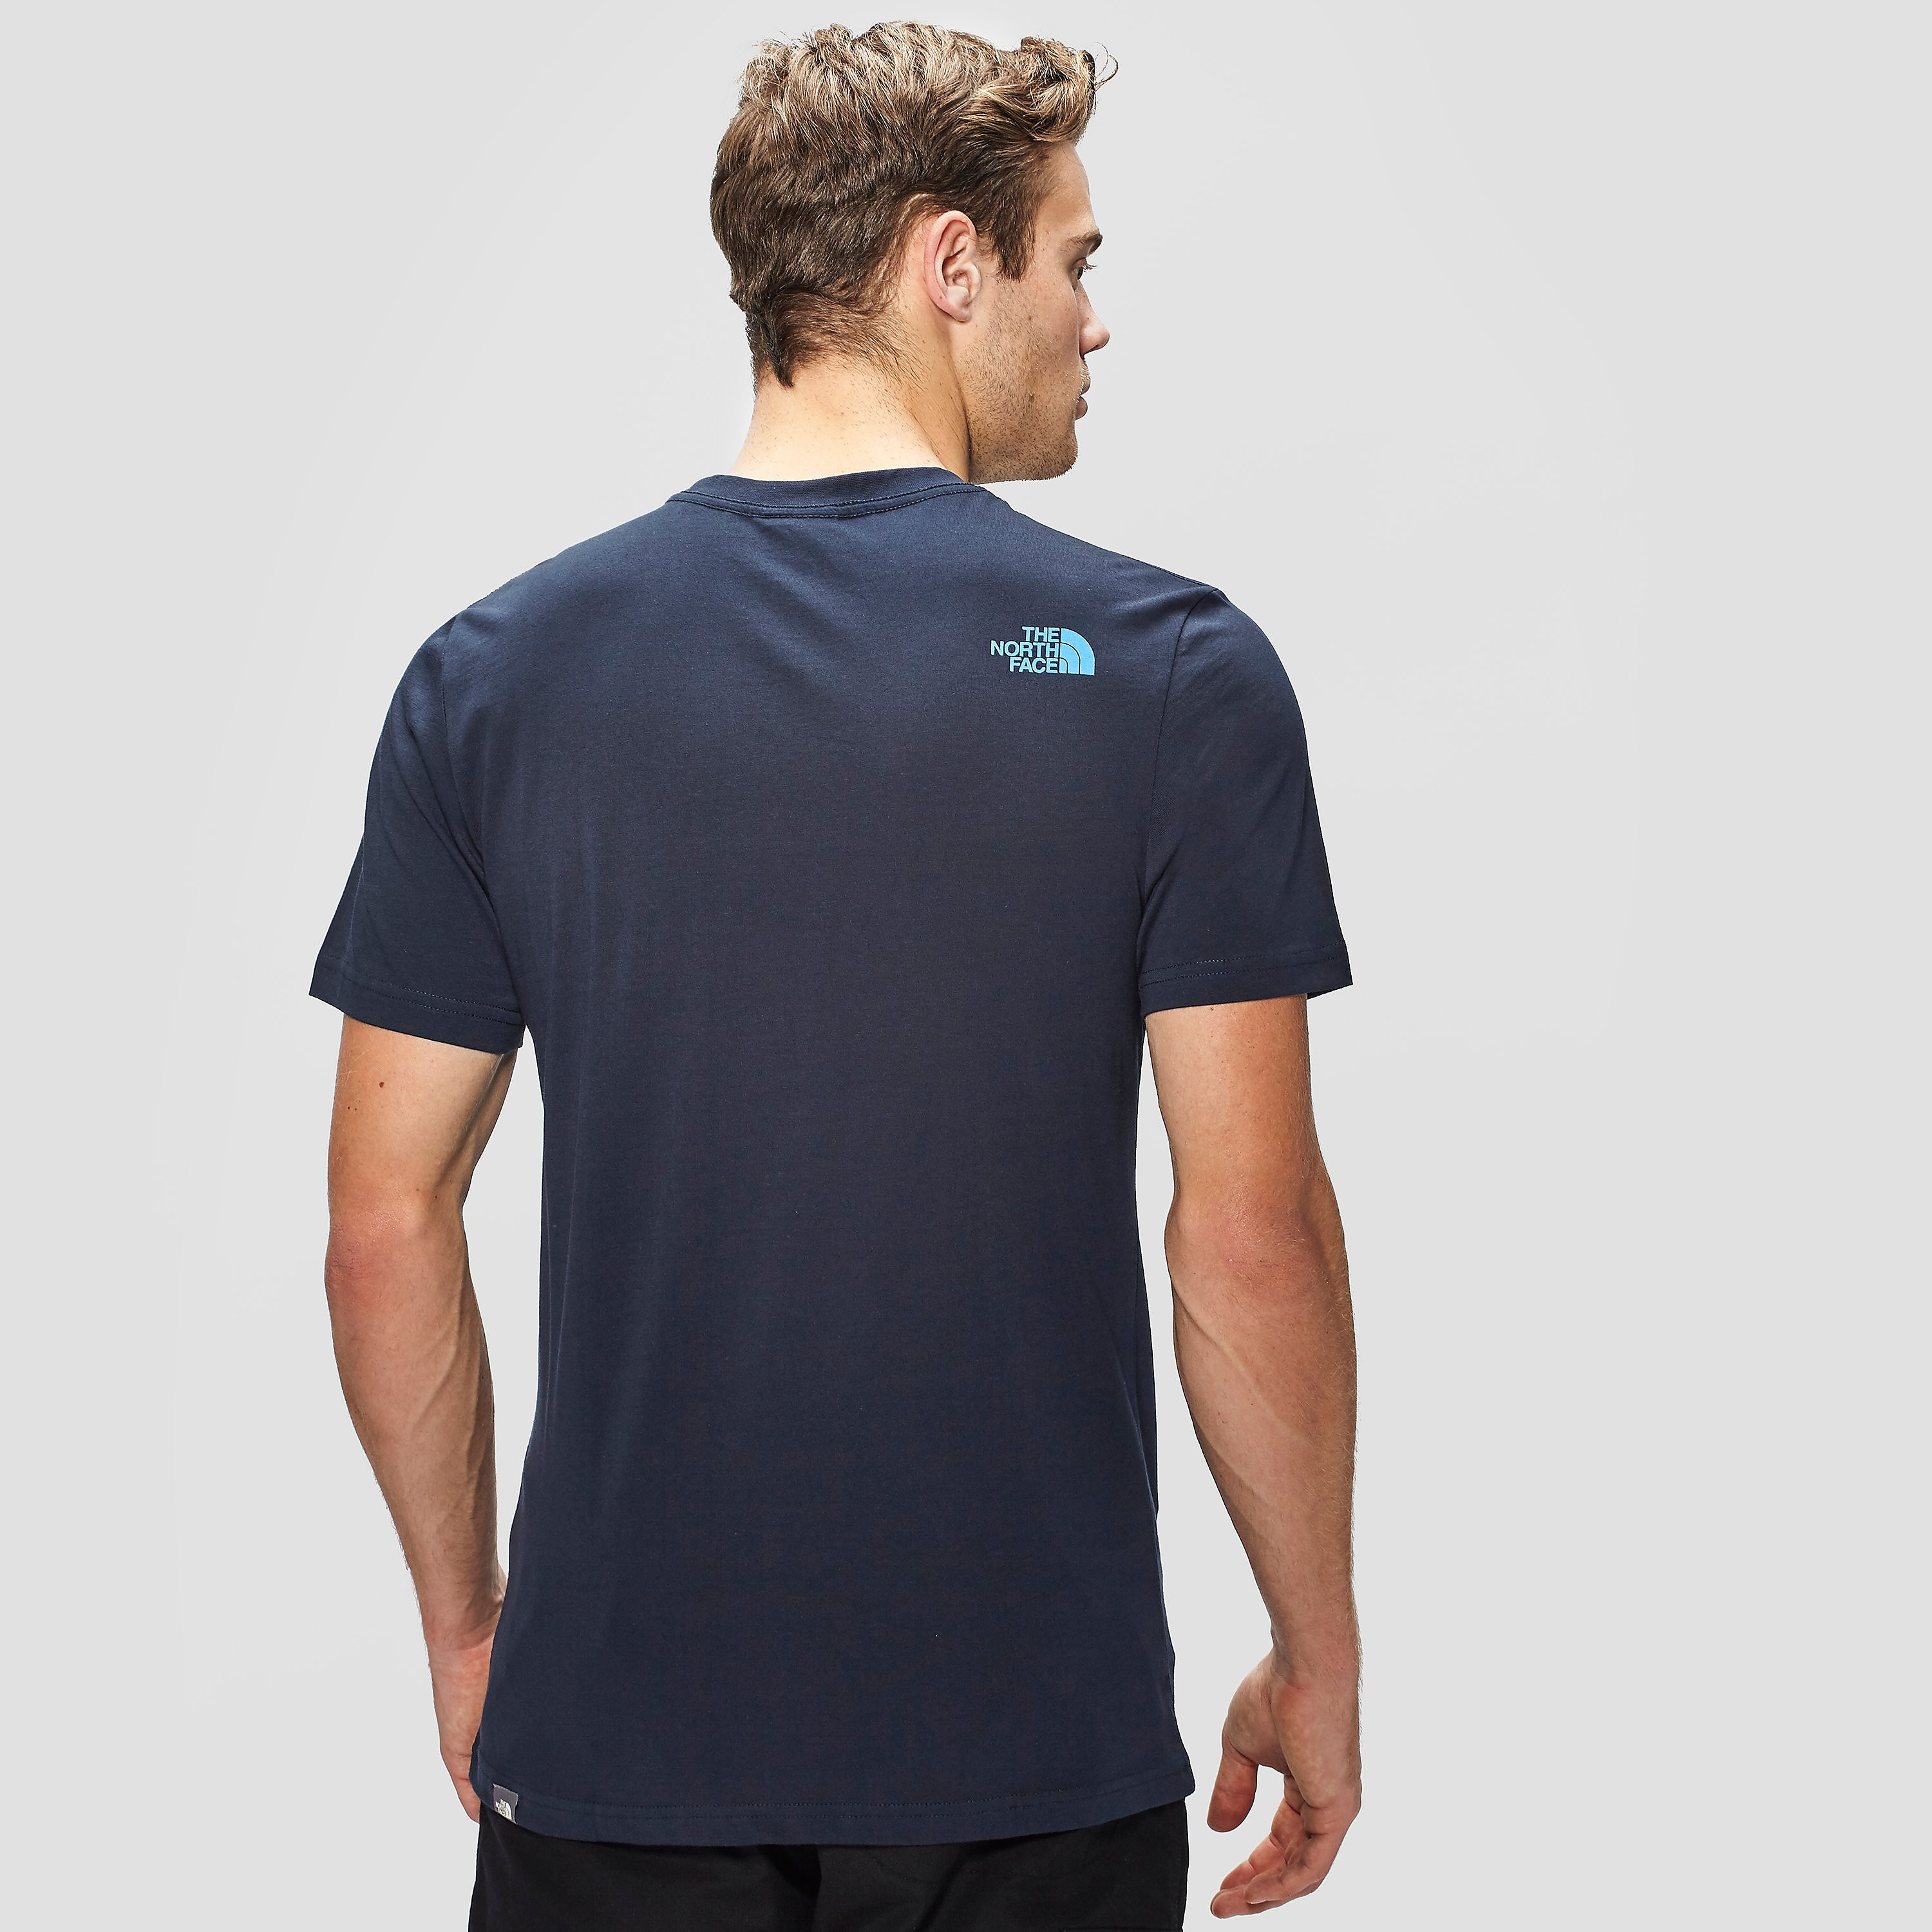 The North Face Never Stop Exploring Men's T-Shirt